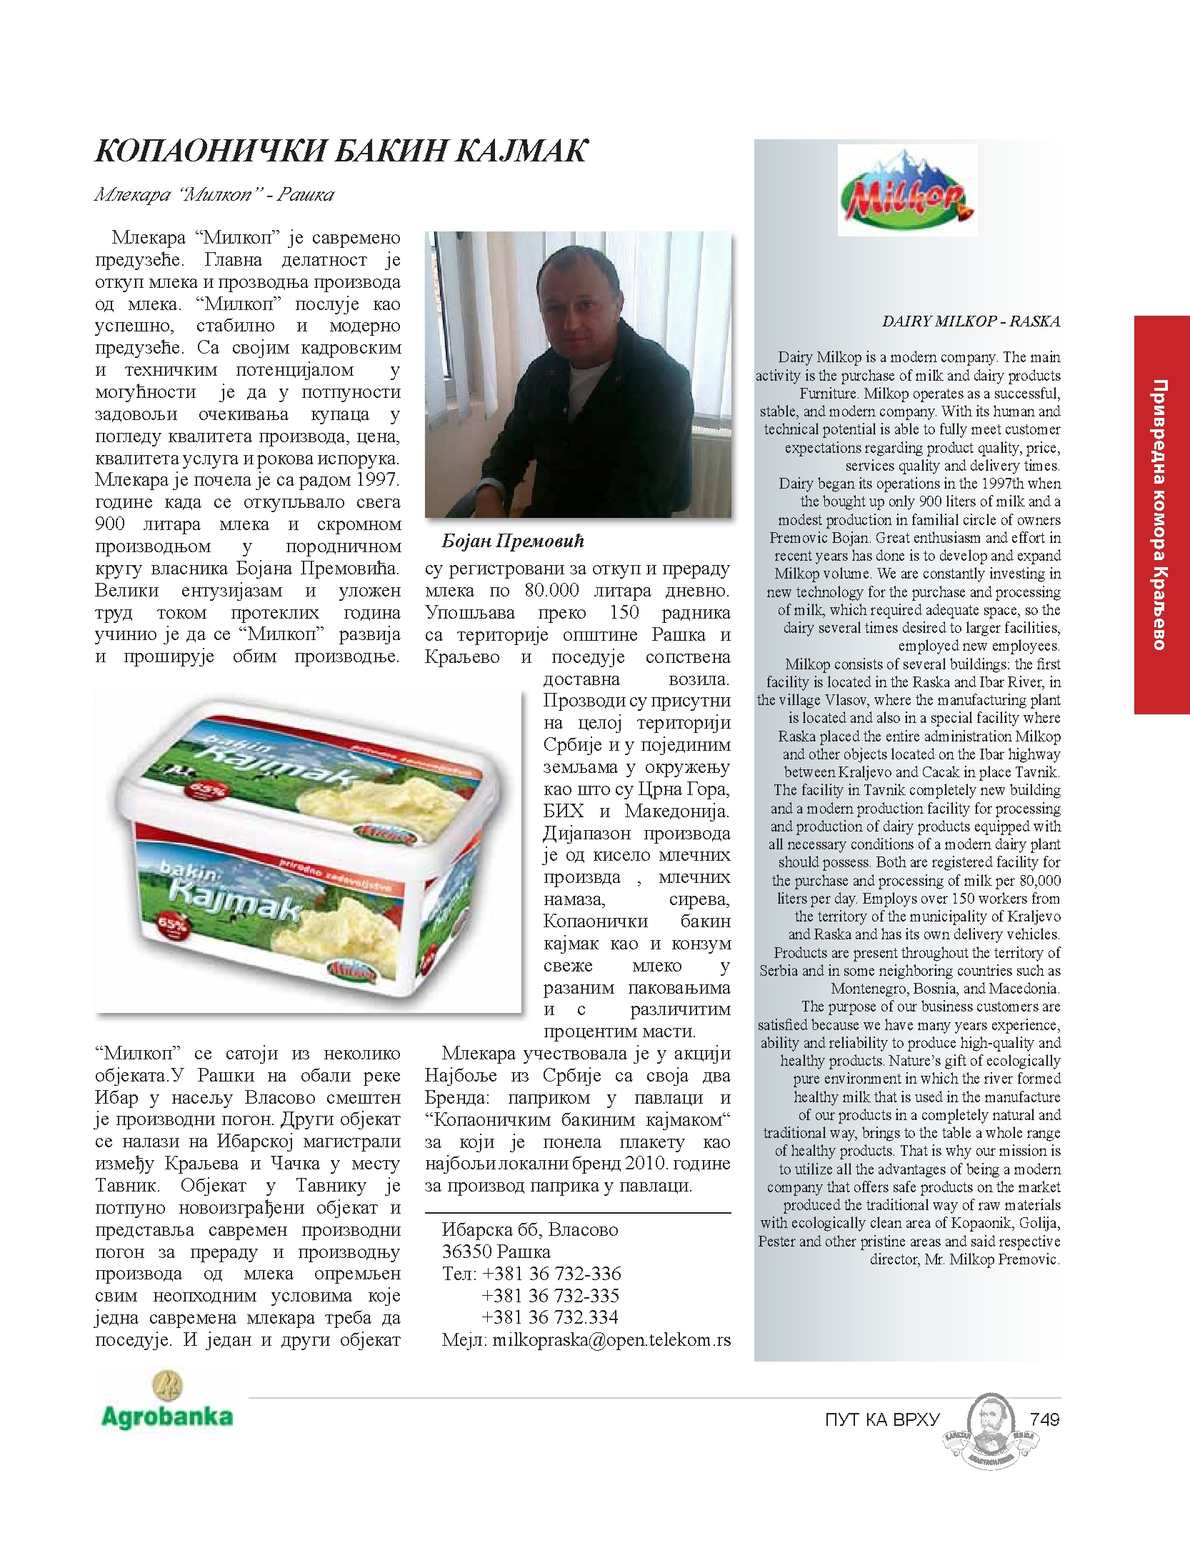 Page 749